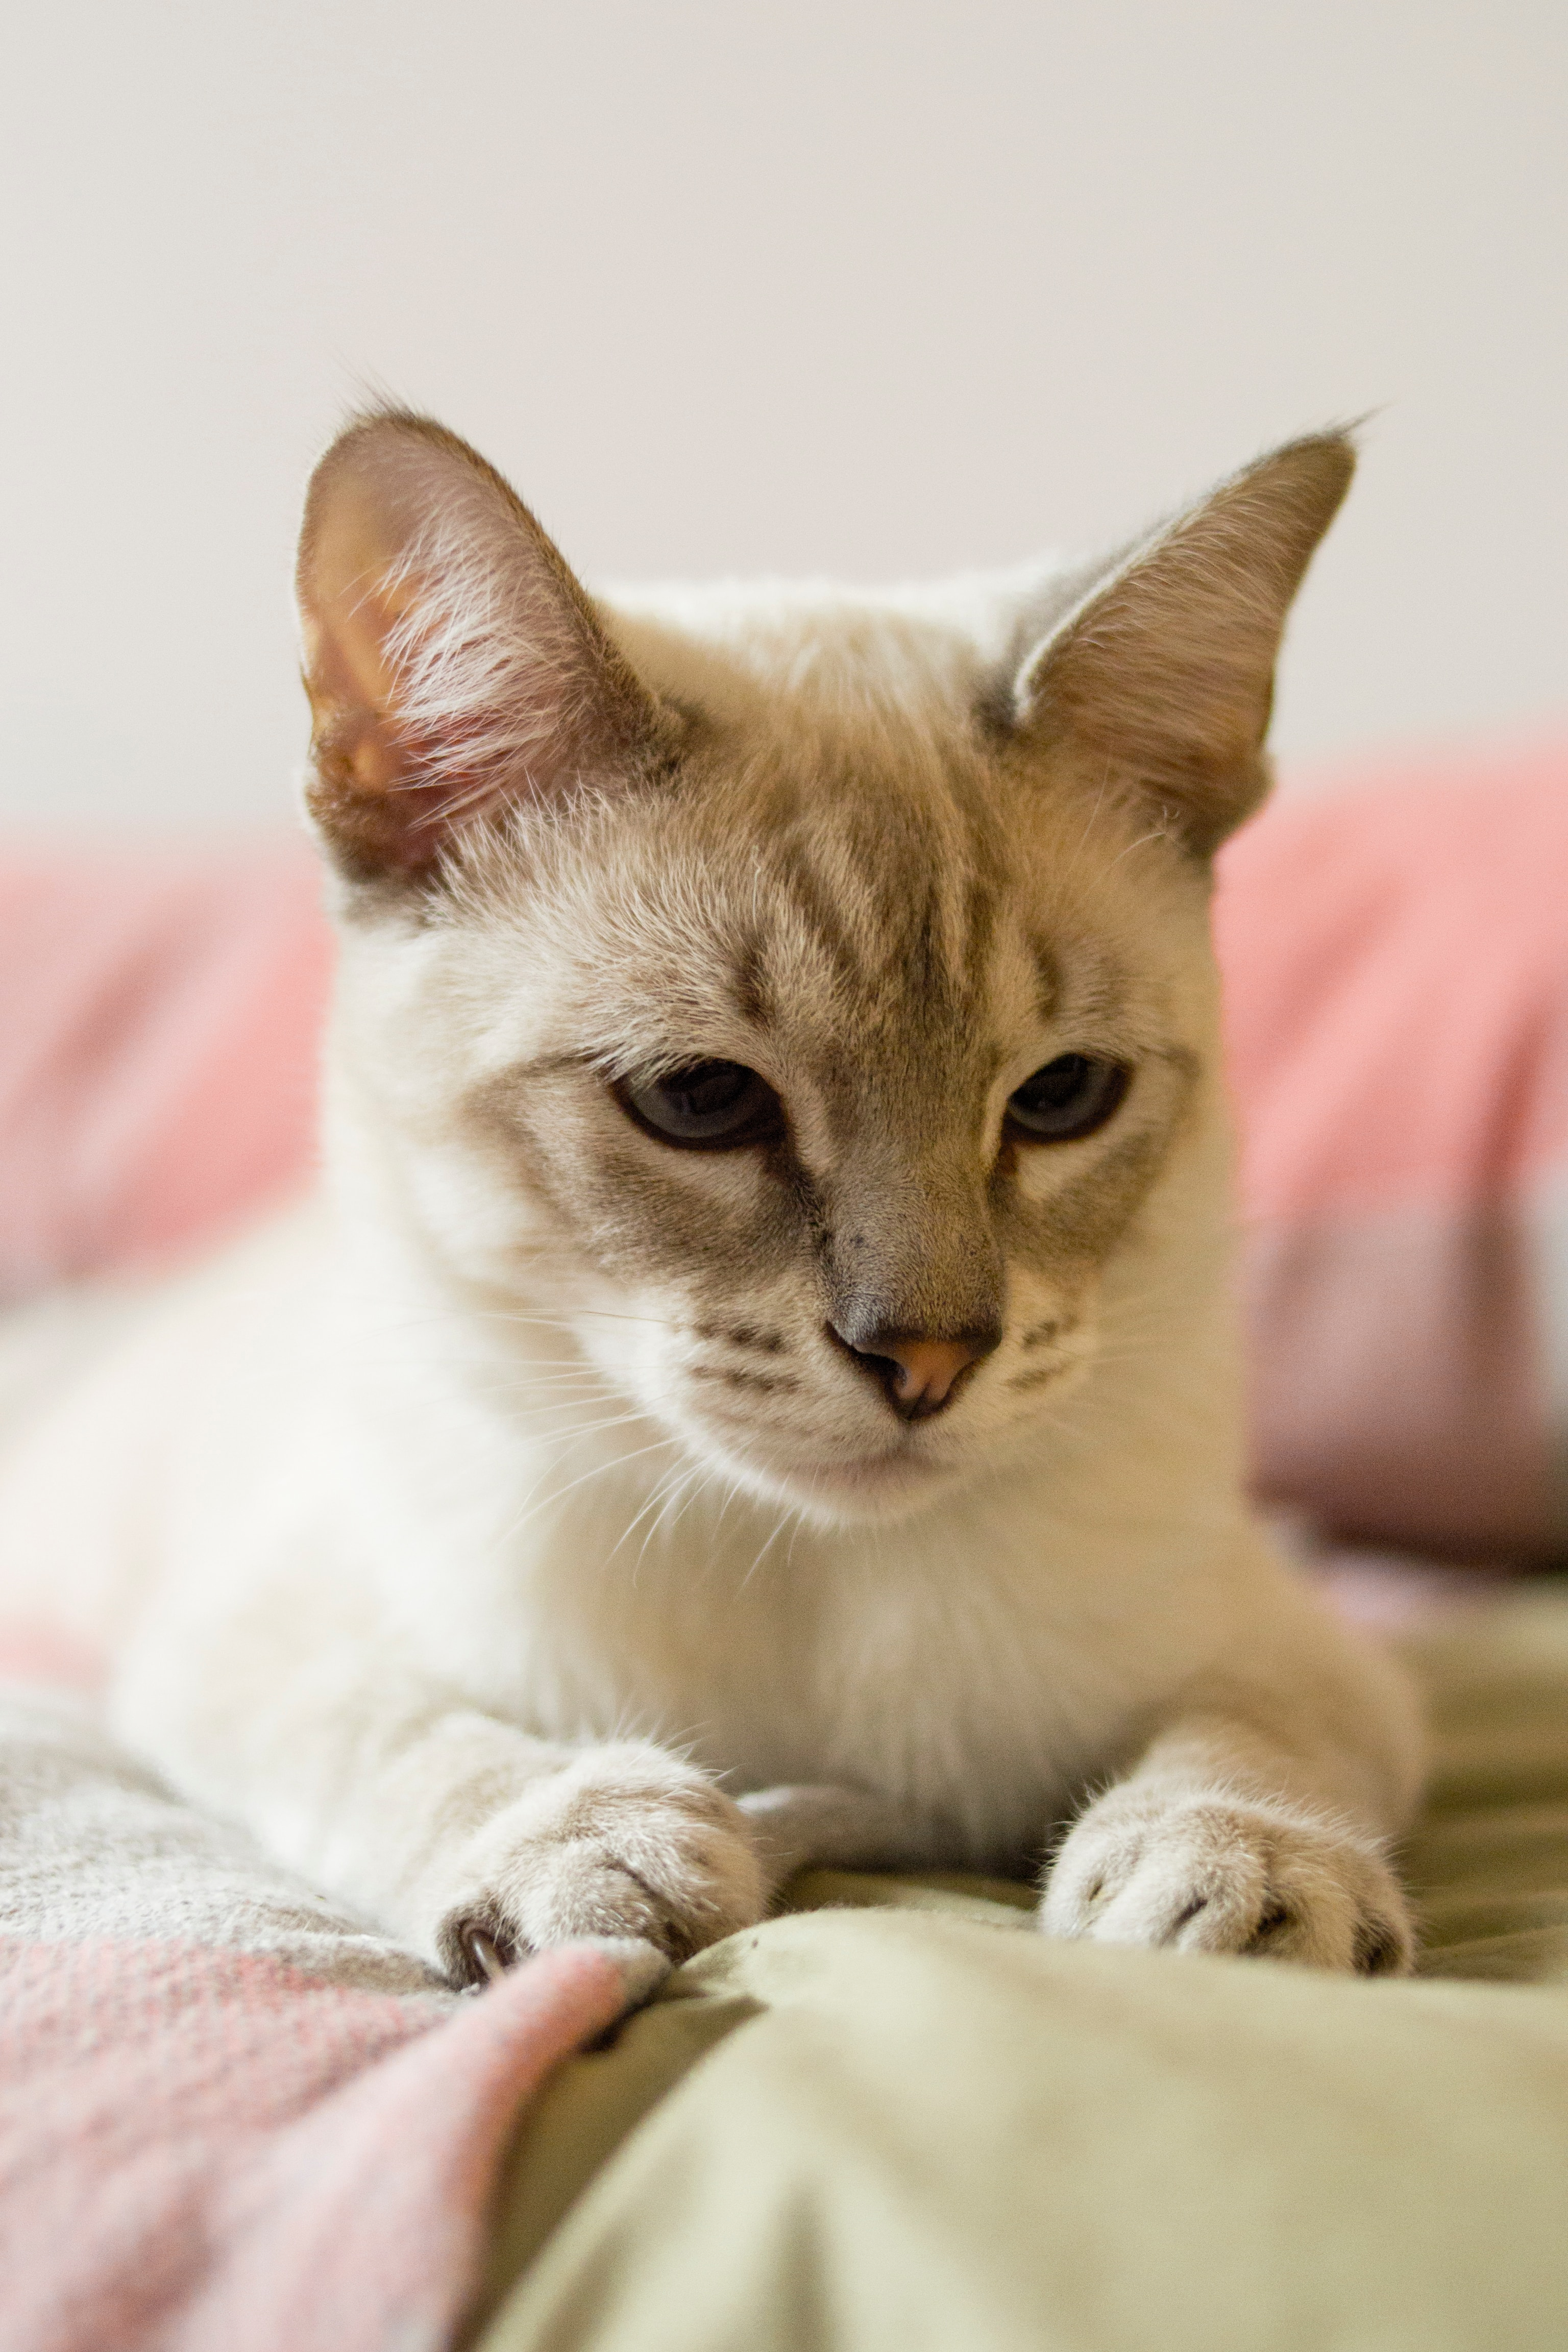 101786 download wallpaper Animals, Cat, Siamese, Grey, Pet, Sight, Opinion screensavers and pictures for free